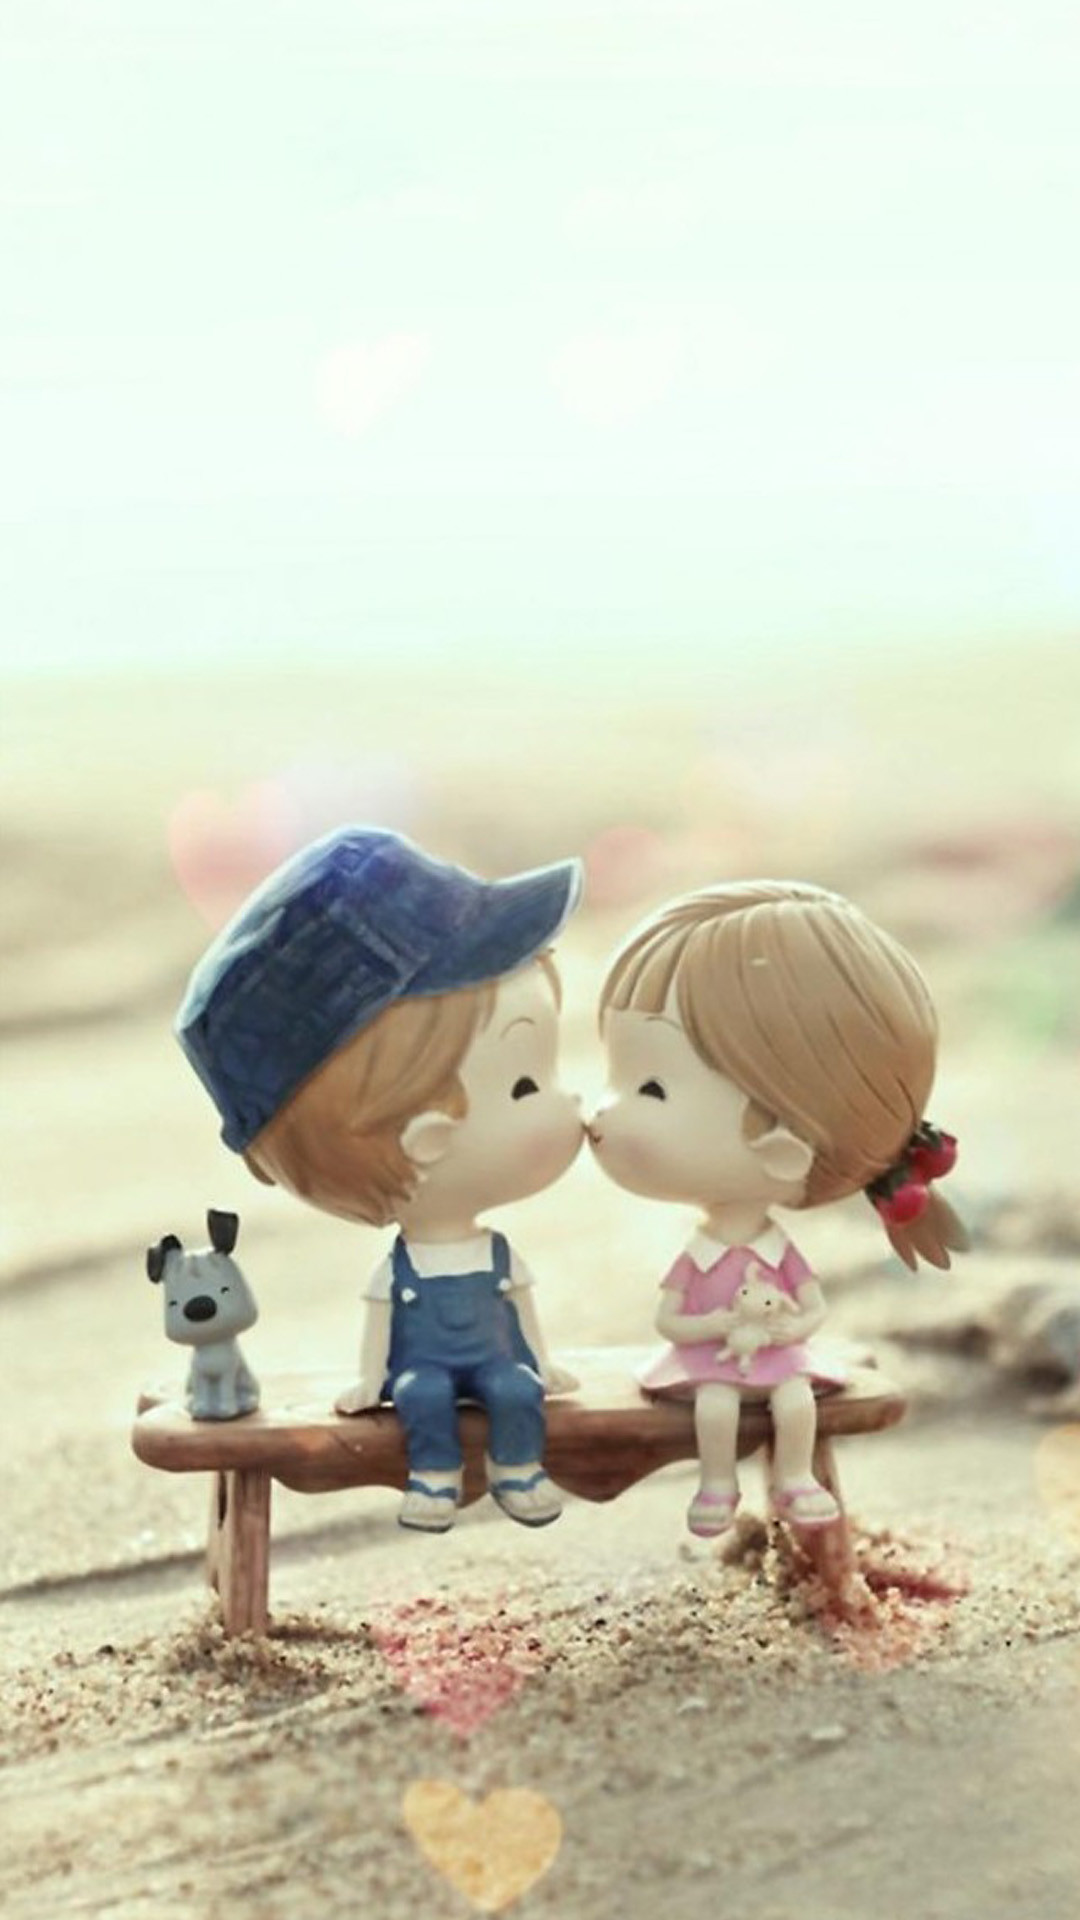 2054 9 Cute Cartoon Kissing Cute Anime Couple Wallpapers For Mobile